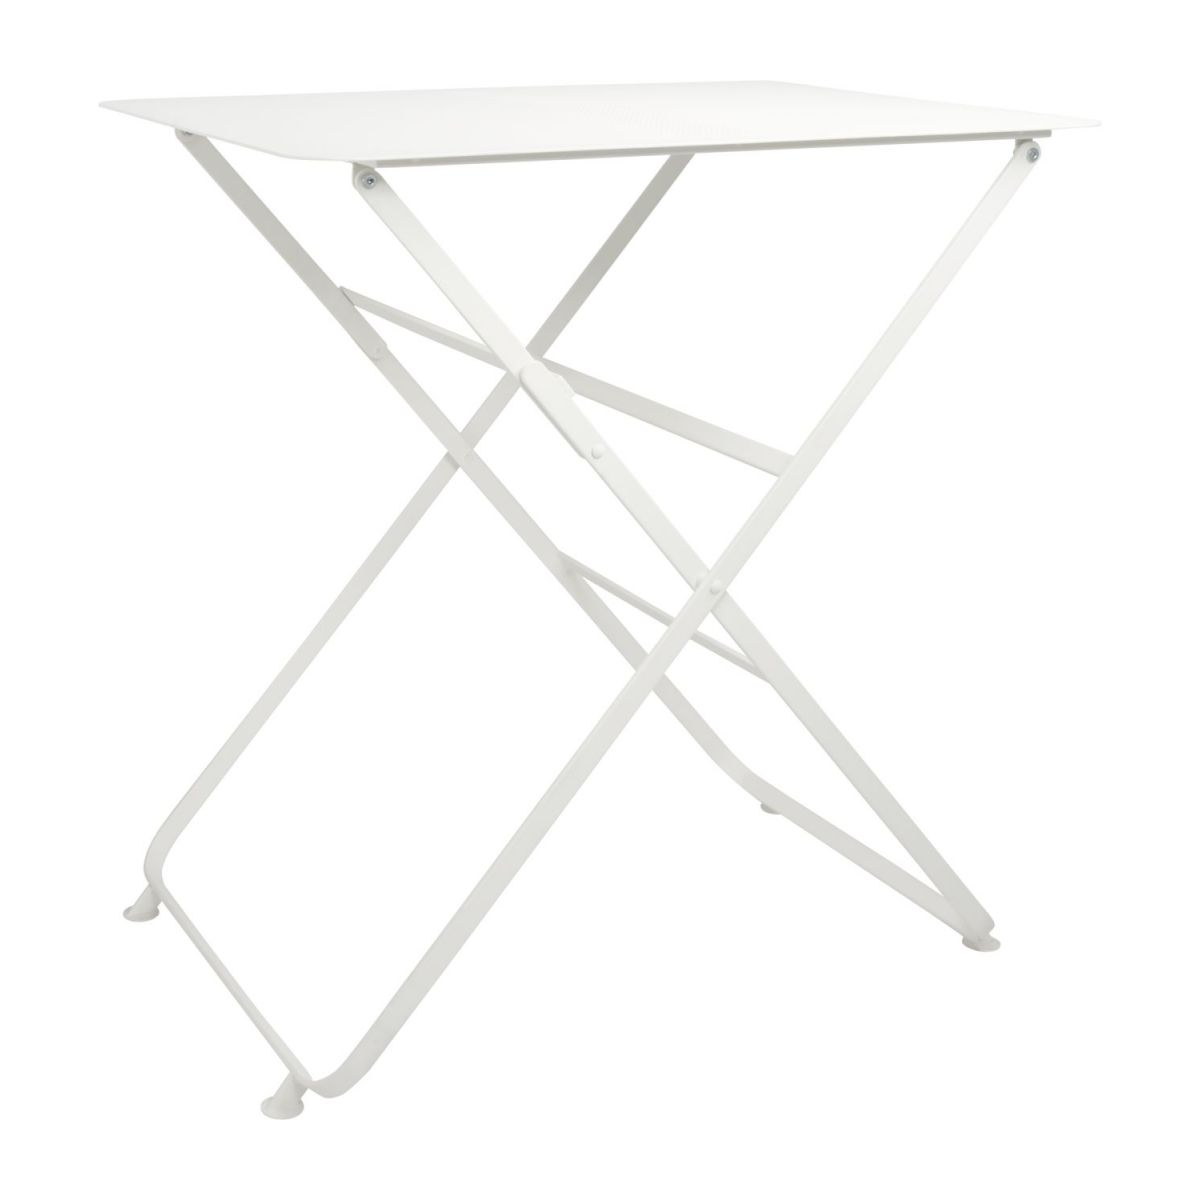 Folding table made of metal, white n°1